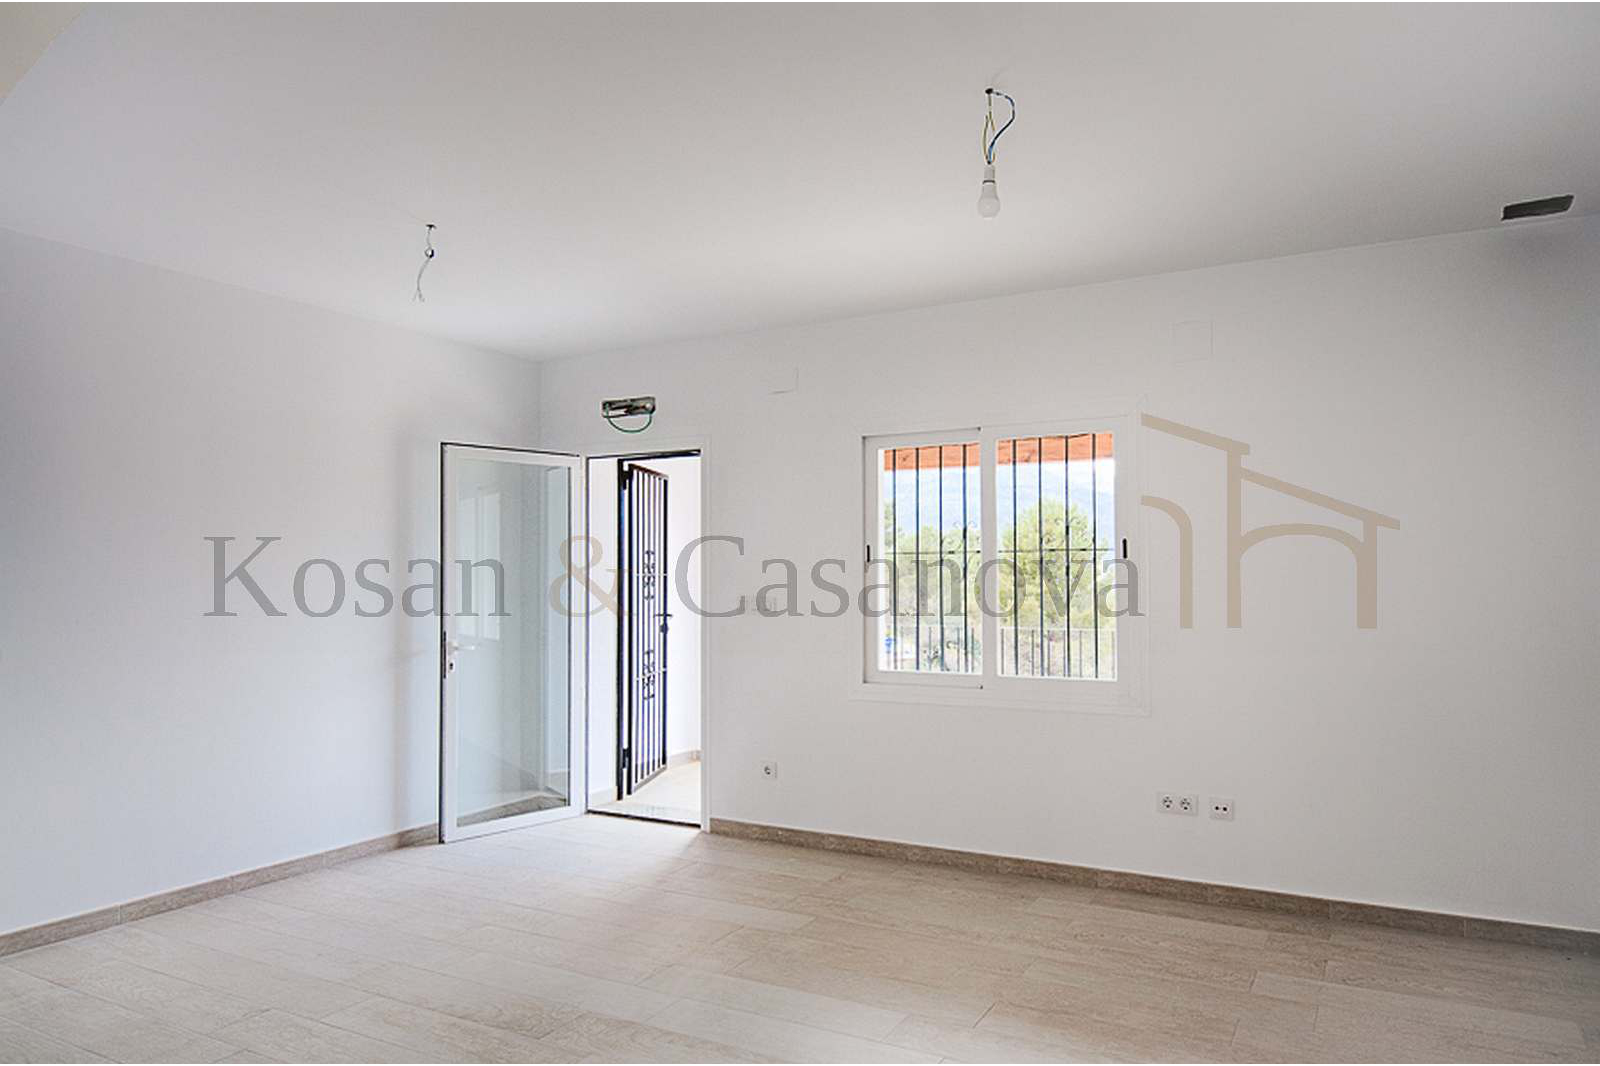 Murla- Detached villas, ready to move into on the Costa Blanca pic 9